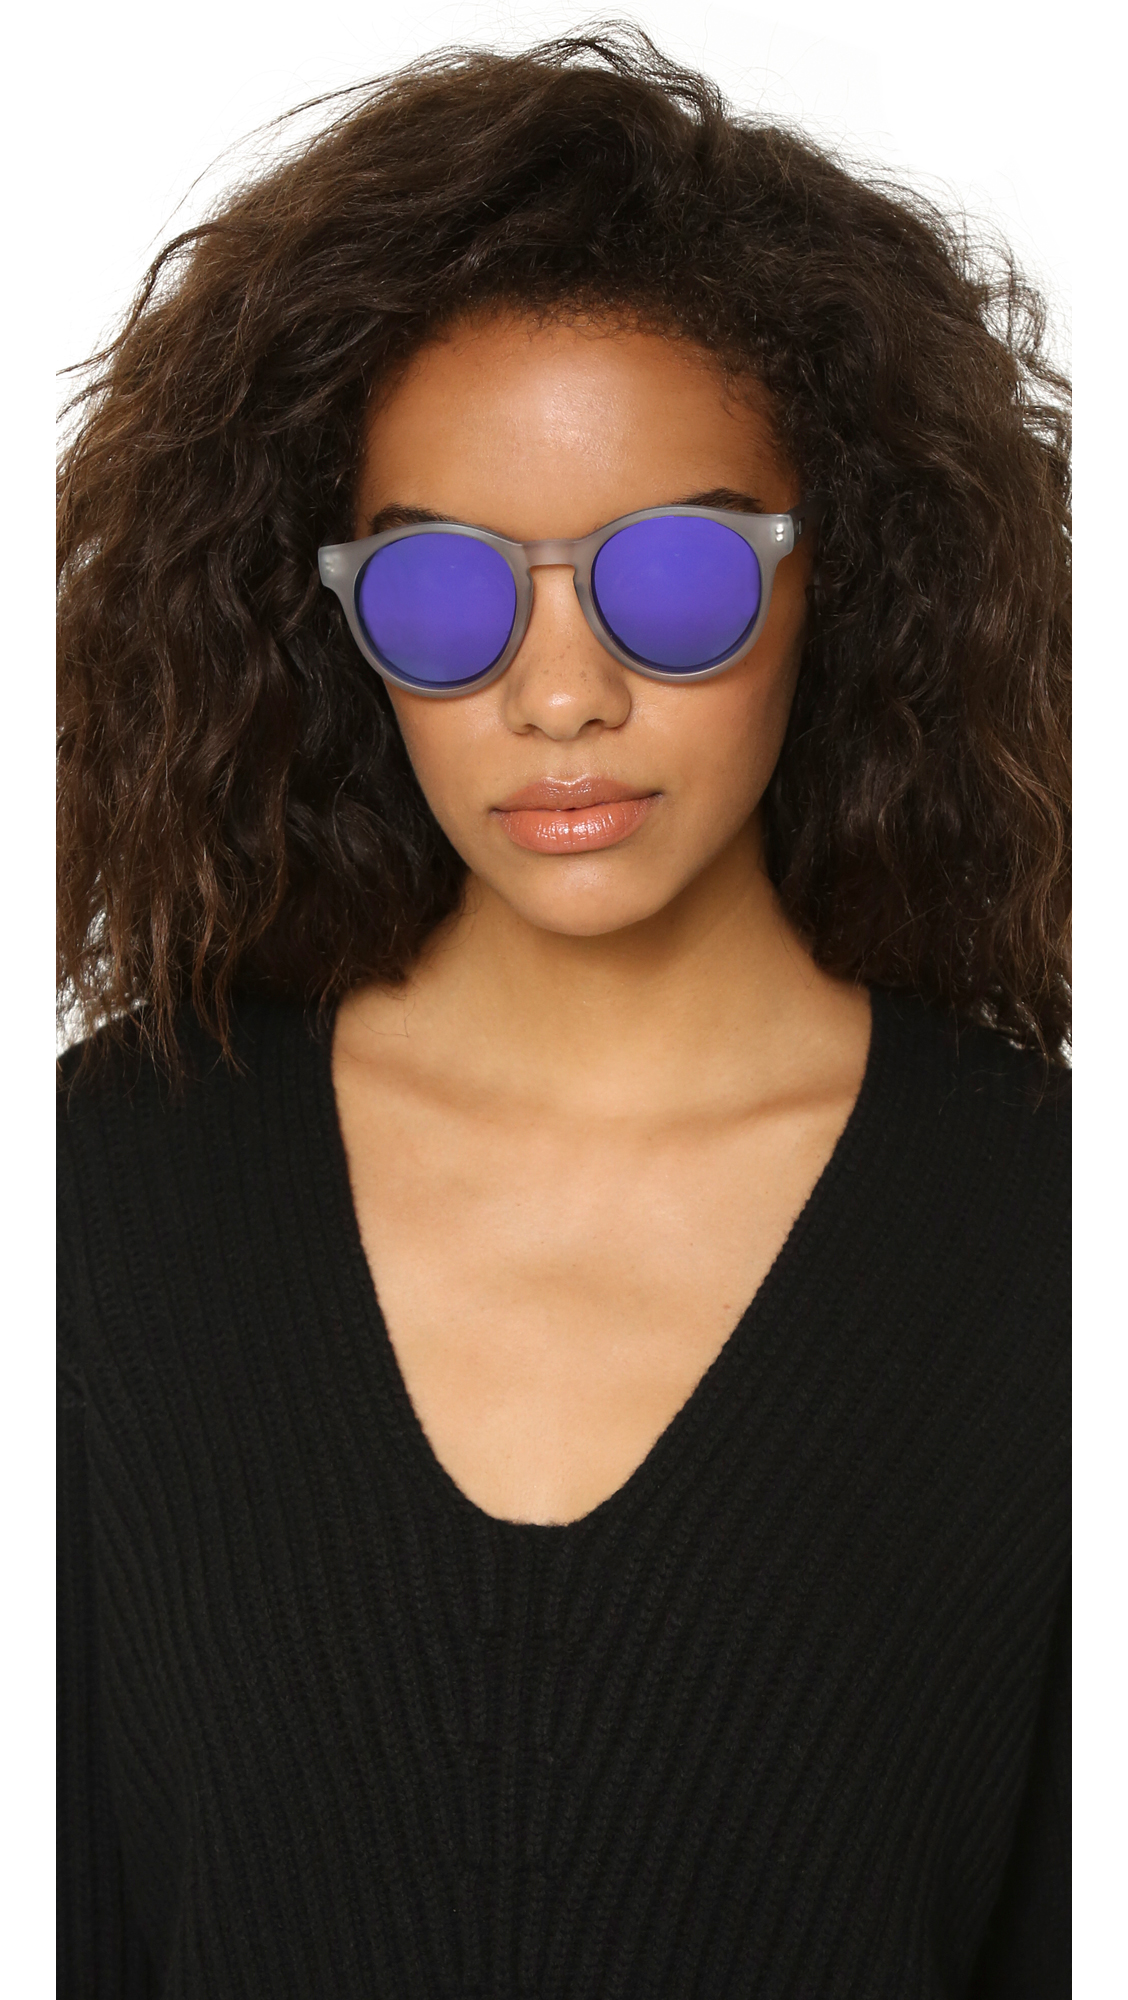 67dfdc83613 Le specs limited edition hey macarena sunglasses shopbop jpg 1128x2000 Hey  macarena